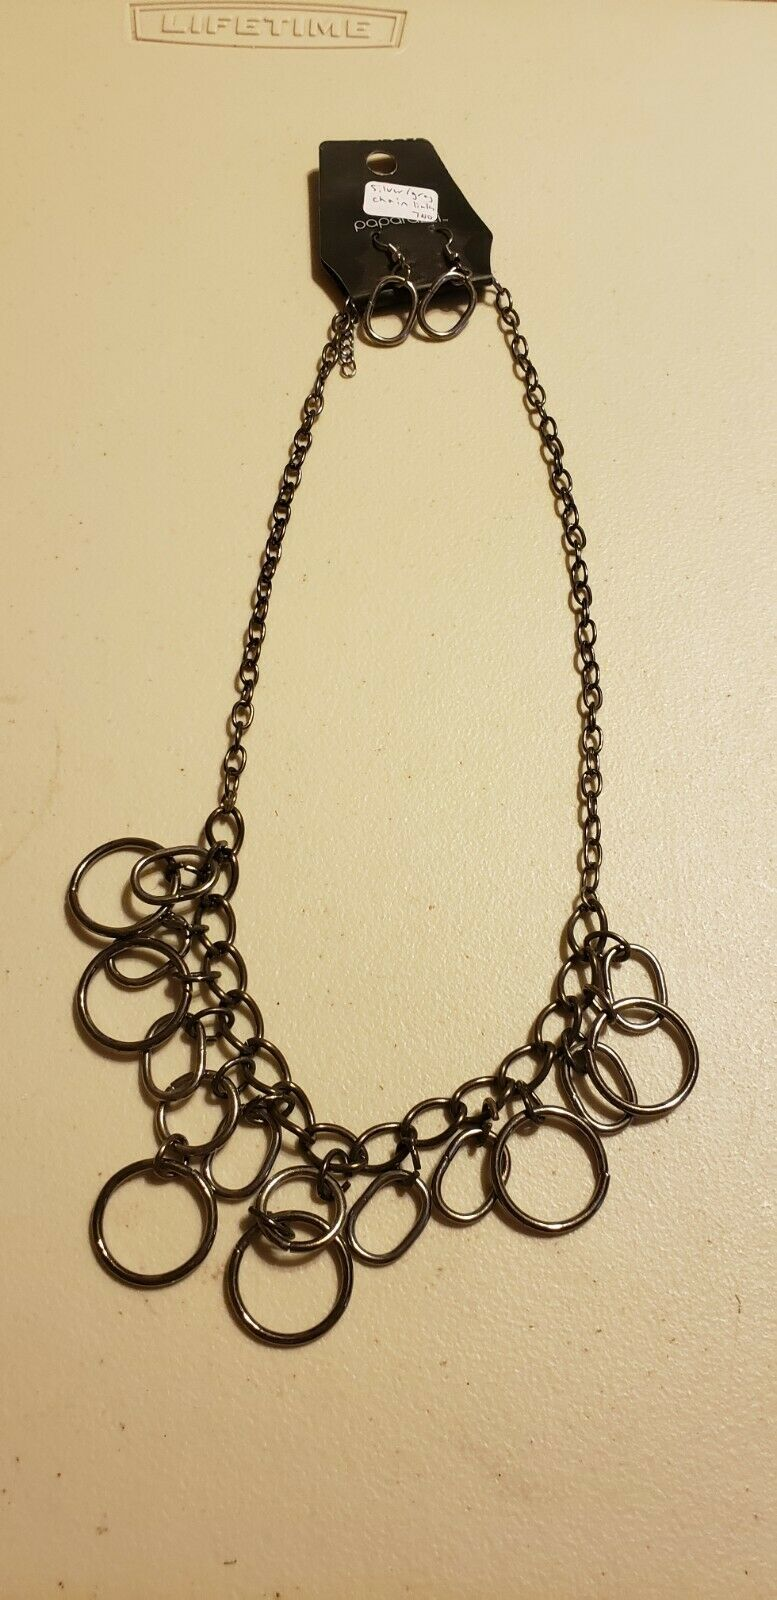 Paparazzi Short Necklace & Earring set (new) #740 SILVER/GRAY CHAIN LINKS - $7.61